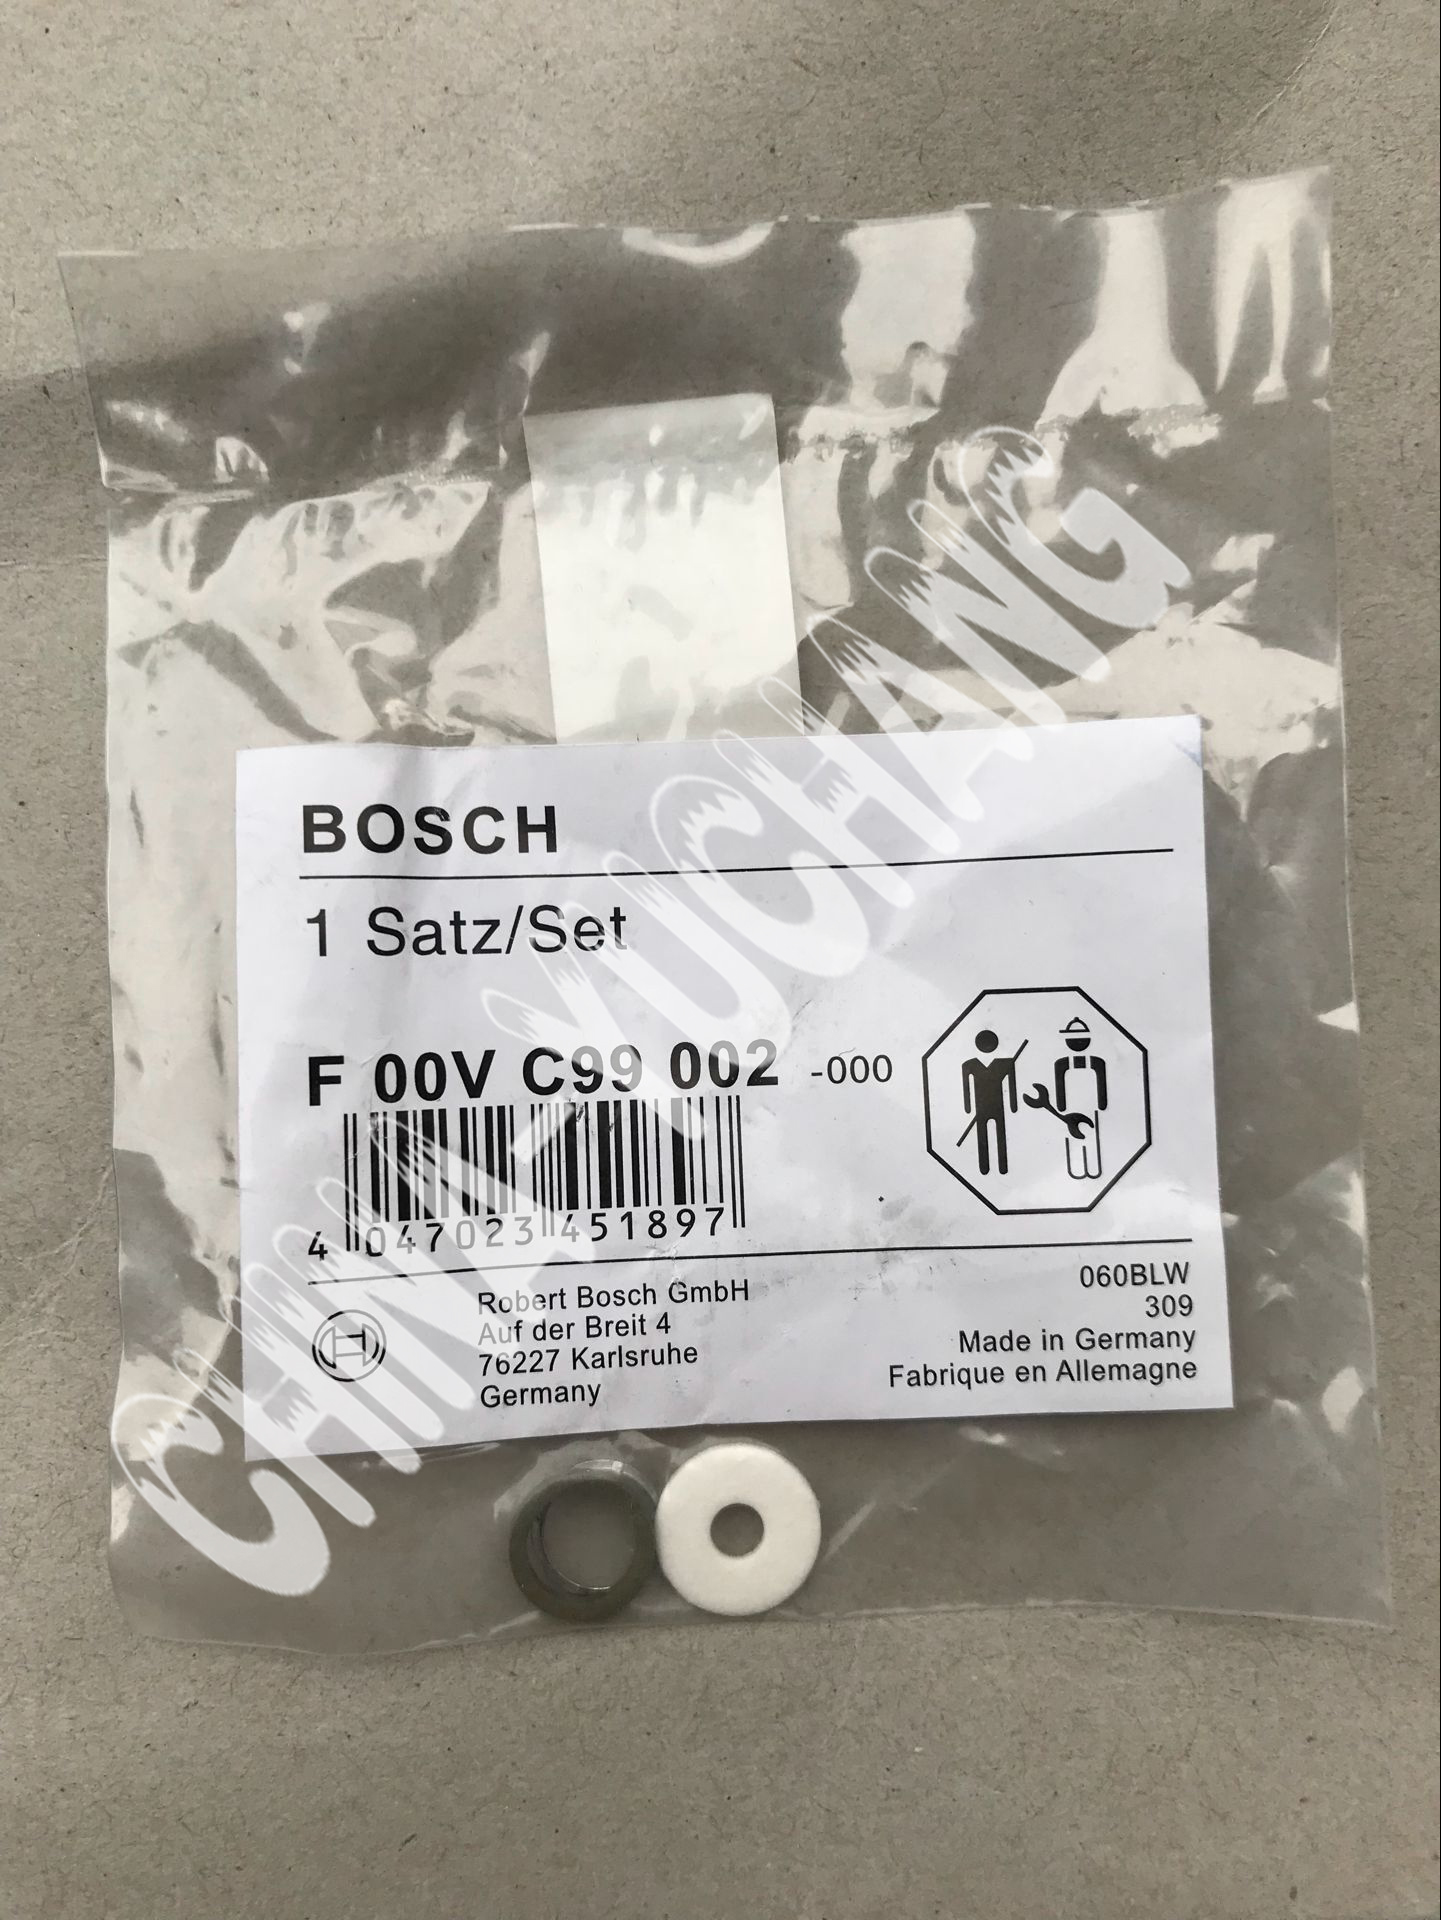 Original bosch gasket repair kit F00VC99002